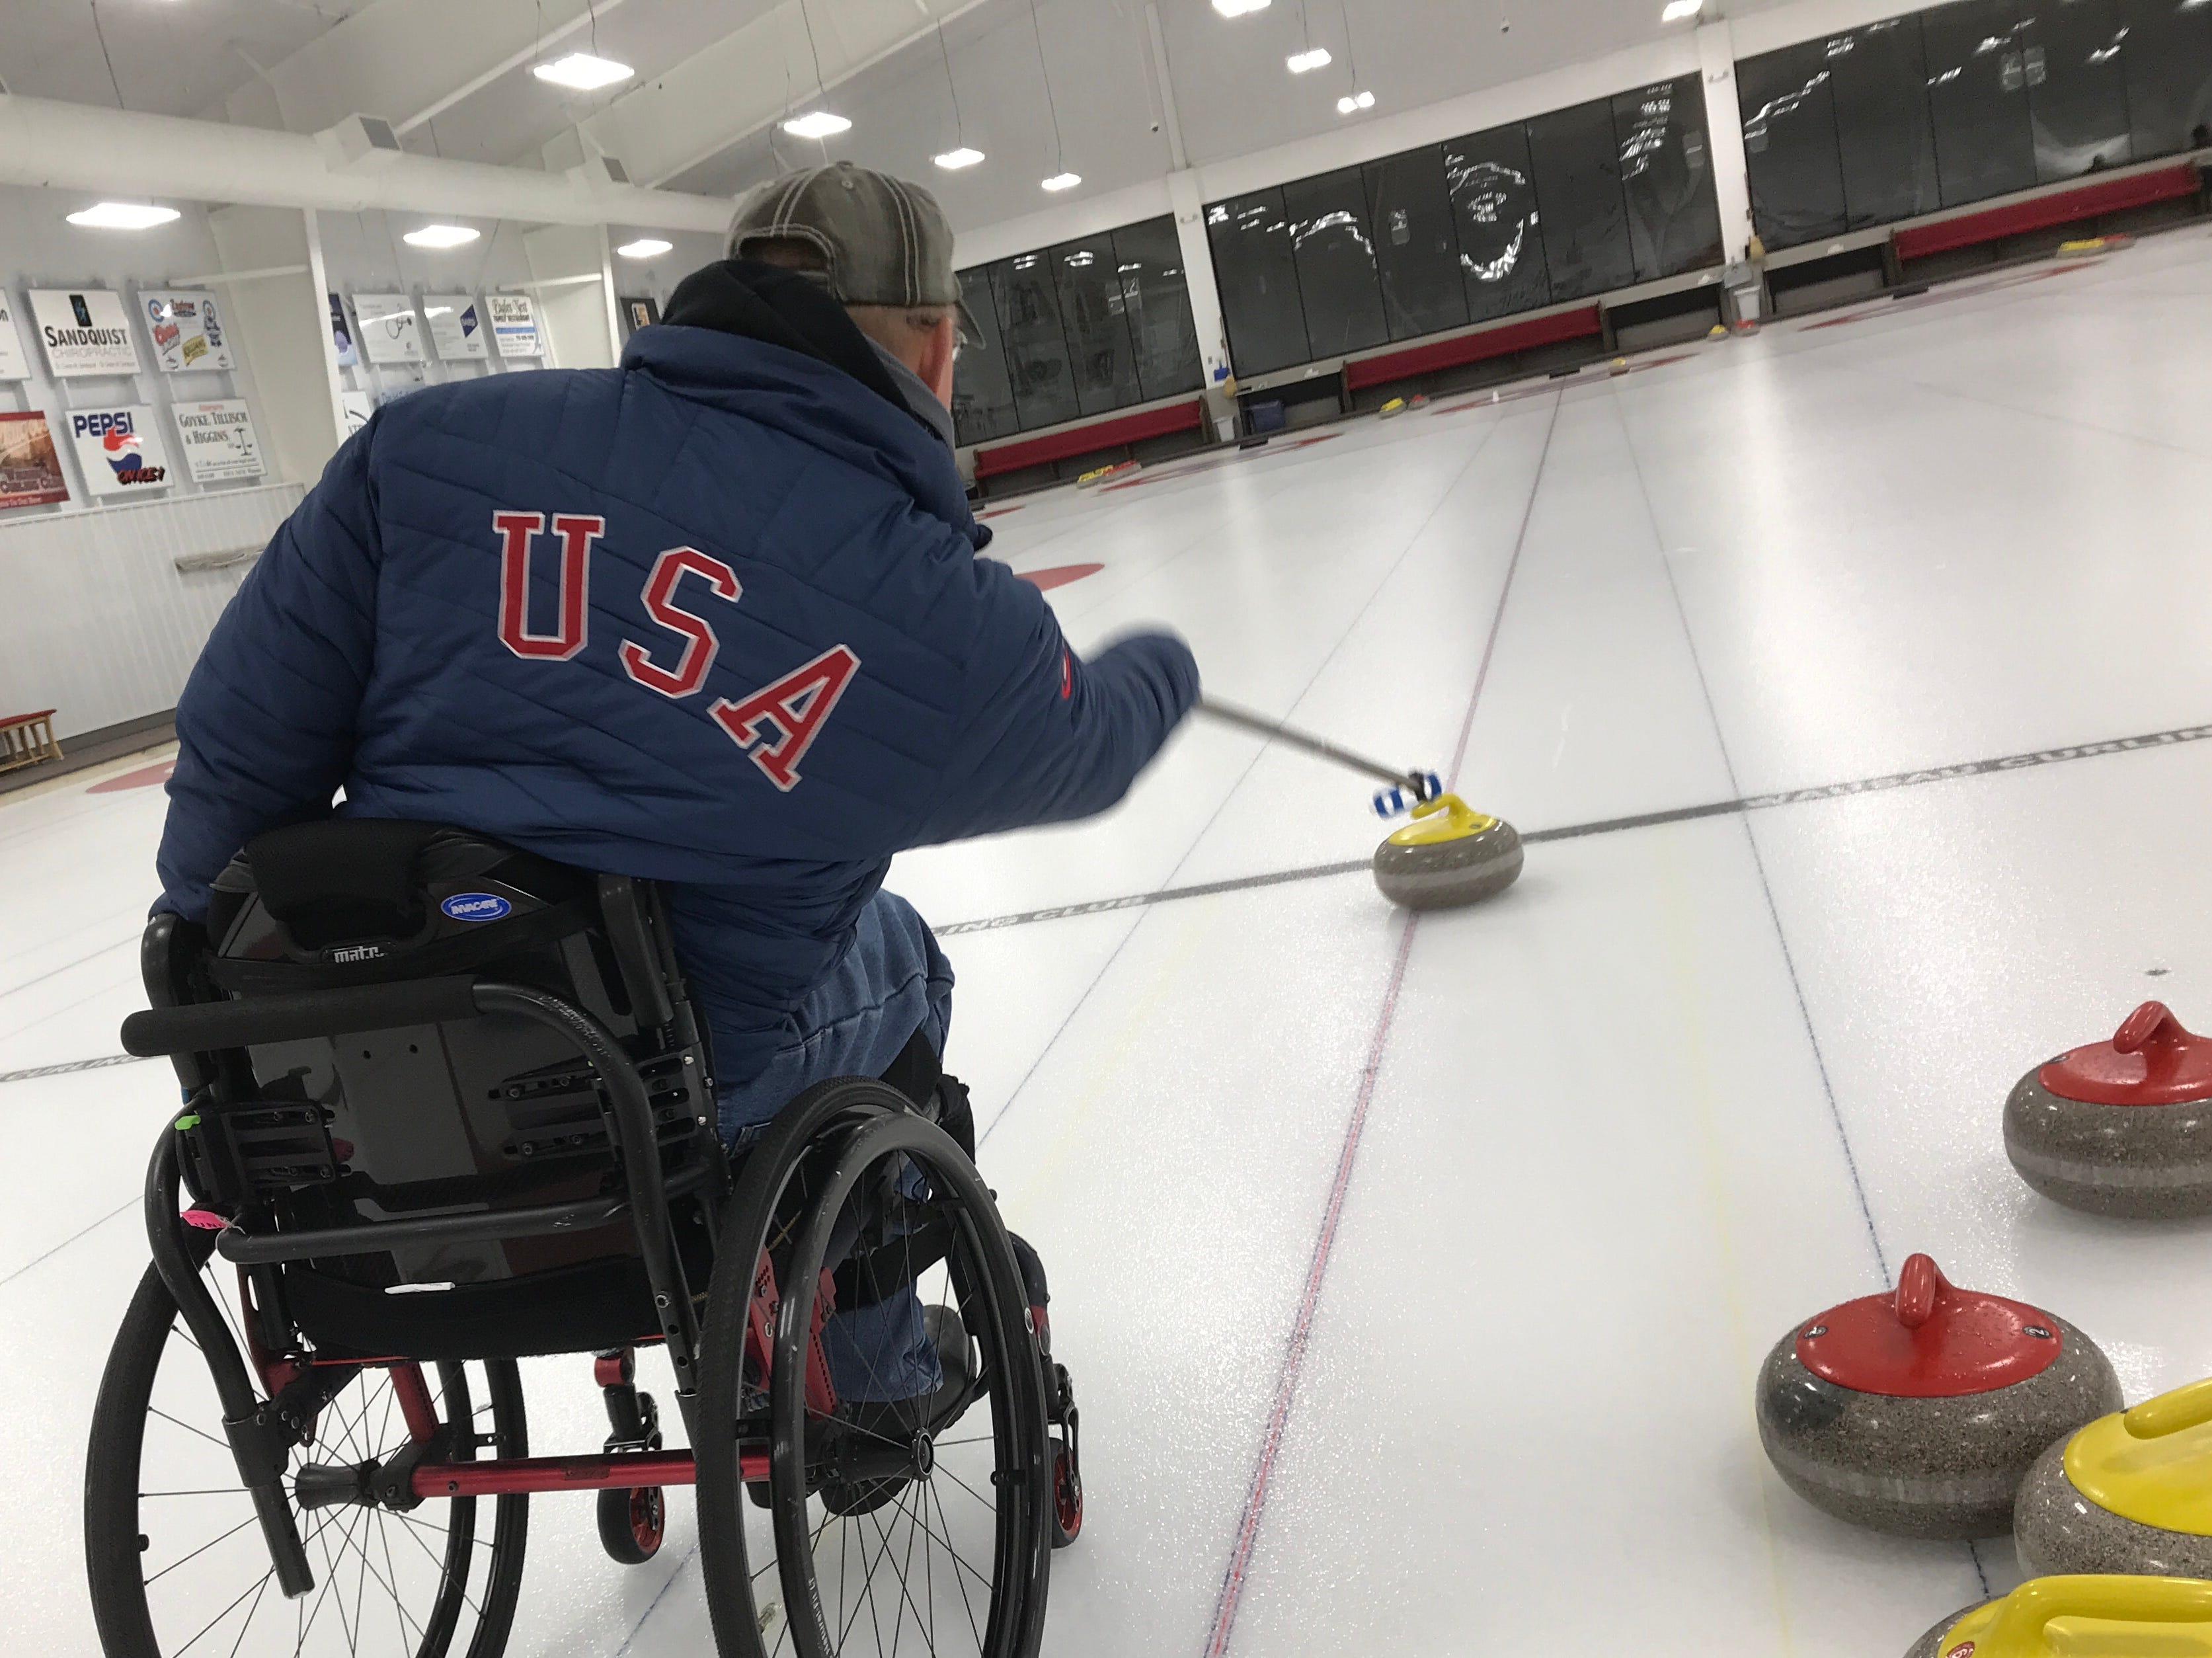 Here Matt Thums is practicing throwing stones on a recent Wednesday morning at the Wausau Curling  Club.